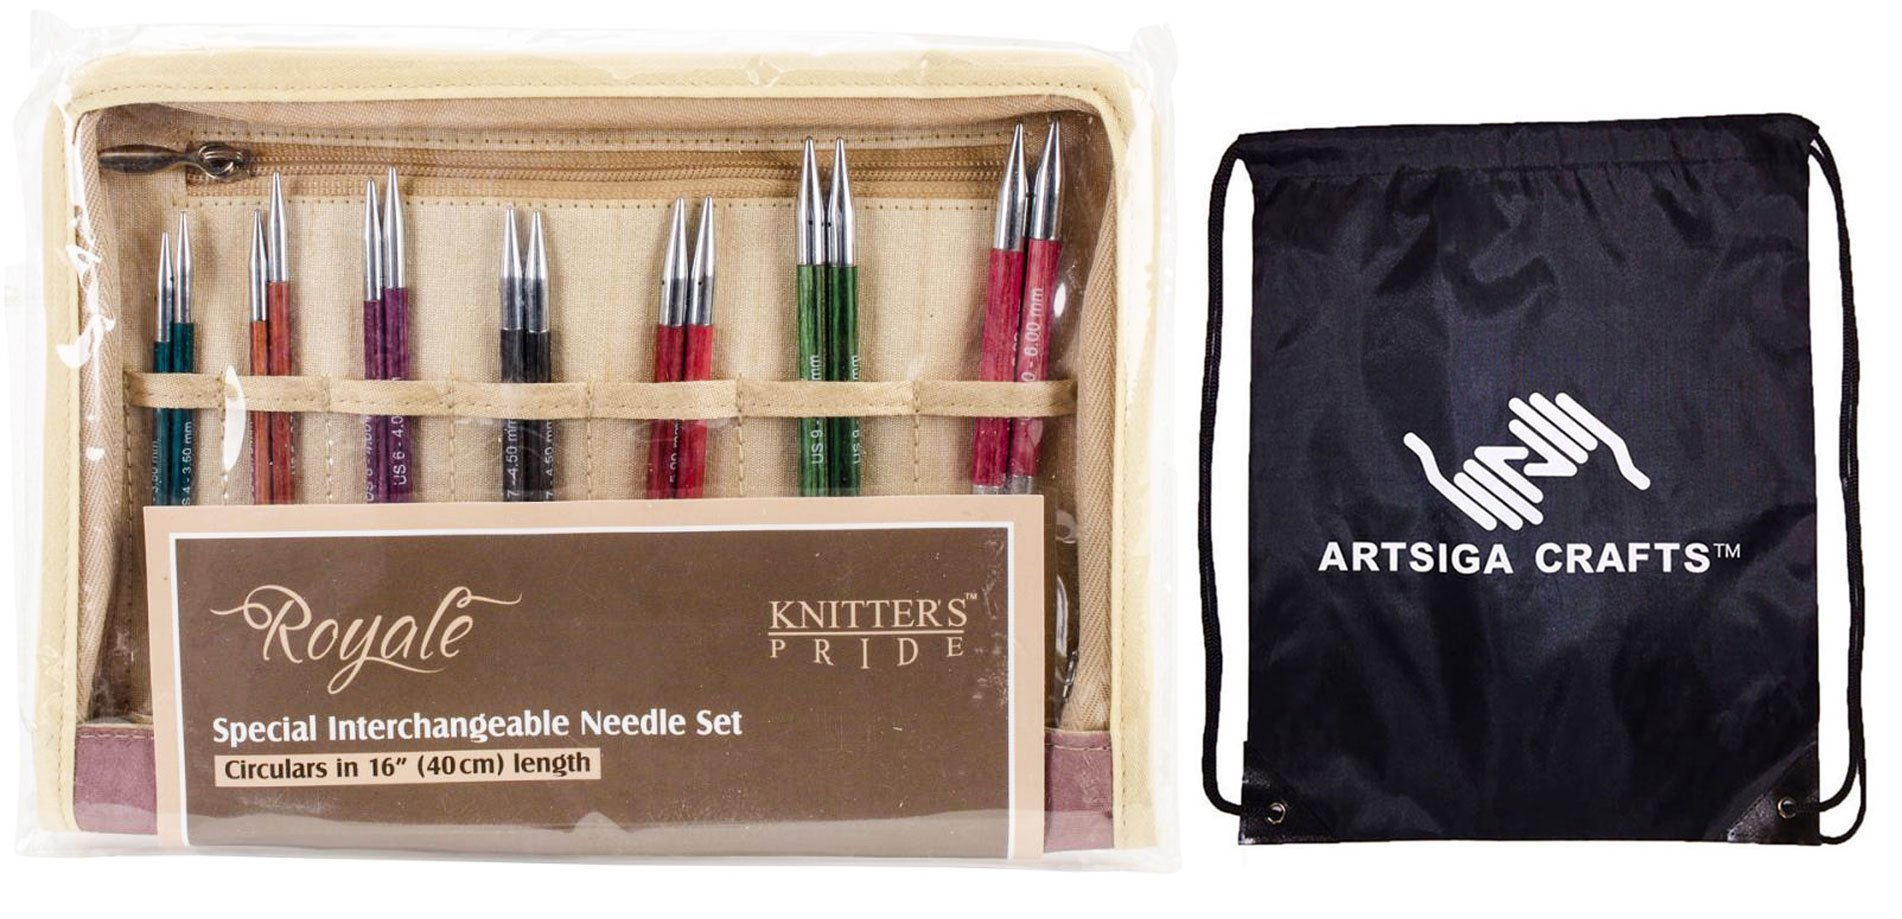 Knitter's Pride Royale Interchangeable Deluxe Short Tip Knitting Needle Set Bundle with 1 Artsiga Crafts Project Bag 220352